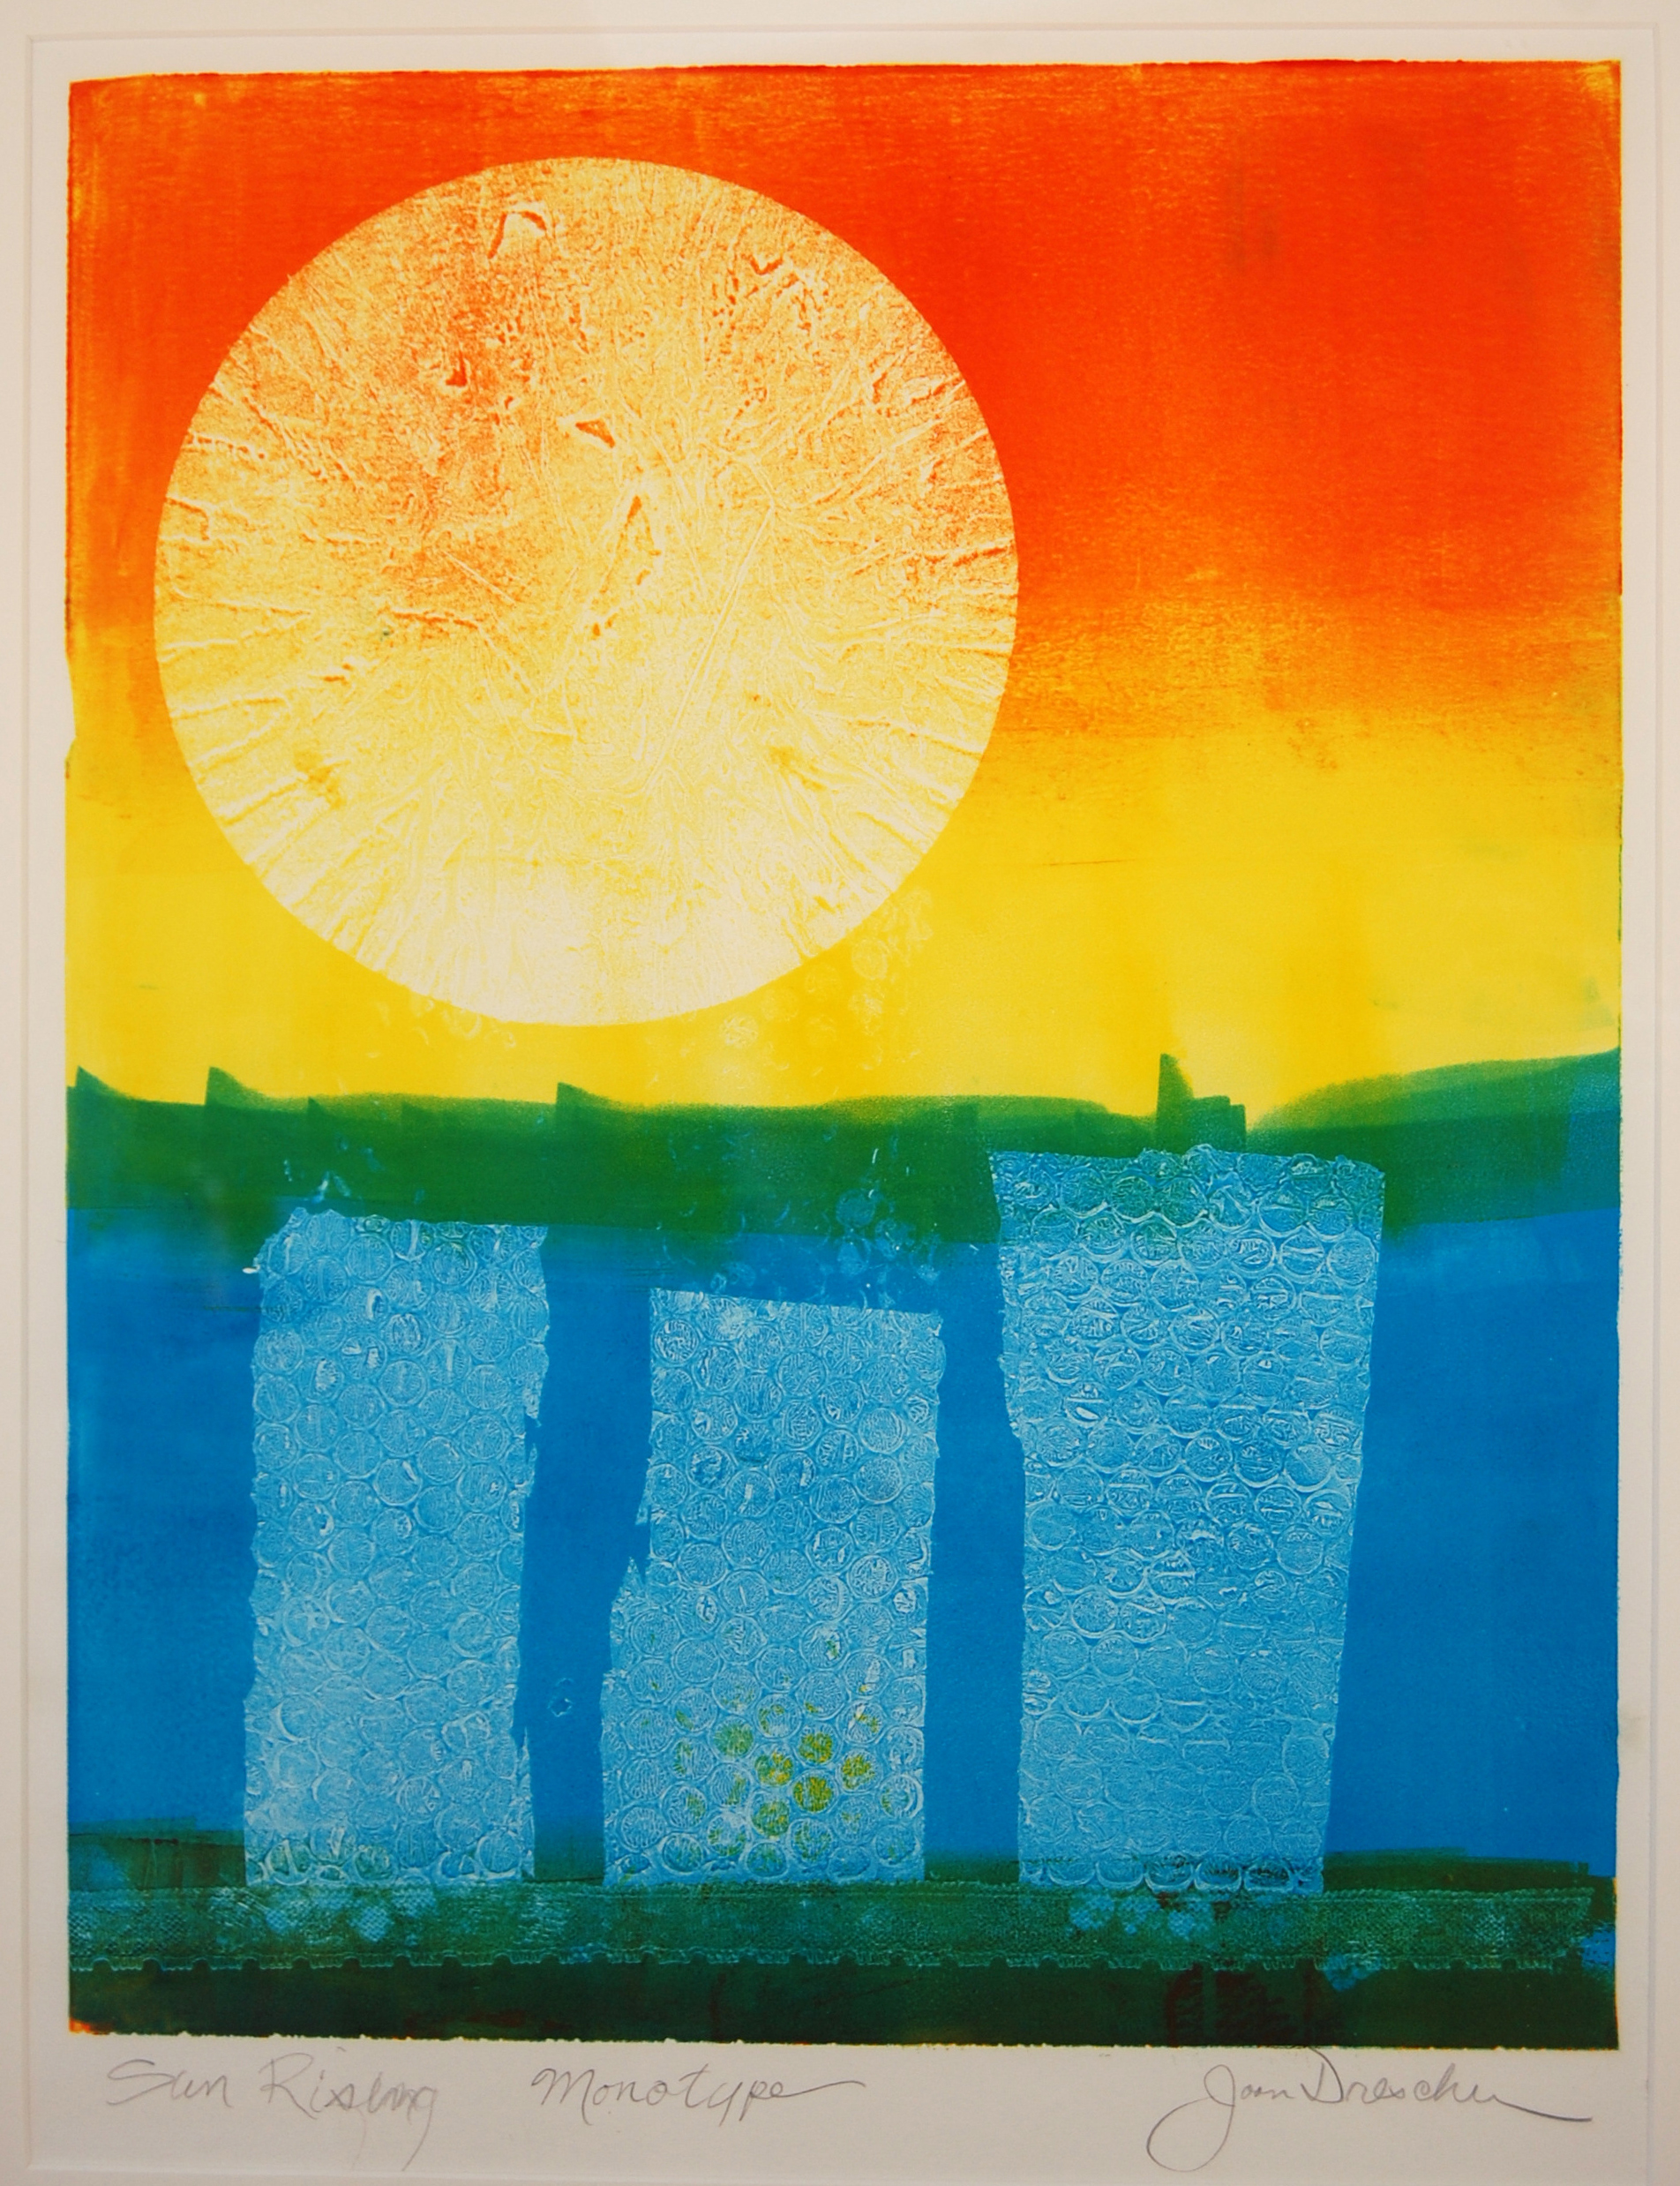 Sun Rising, Monotype (on cover of    ISSUE 02   )